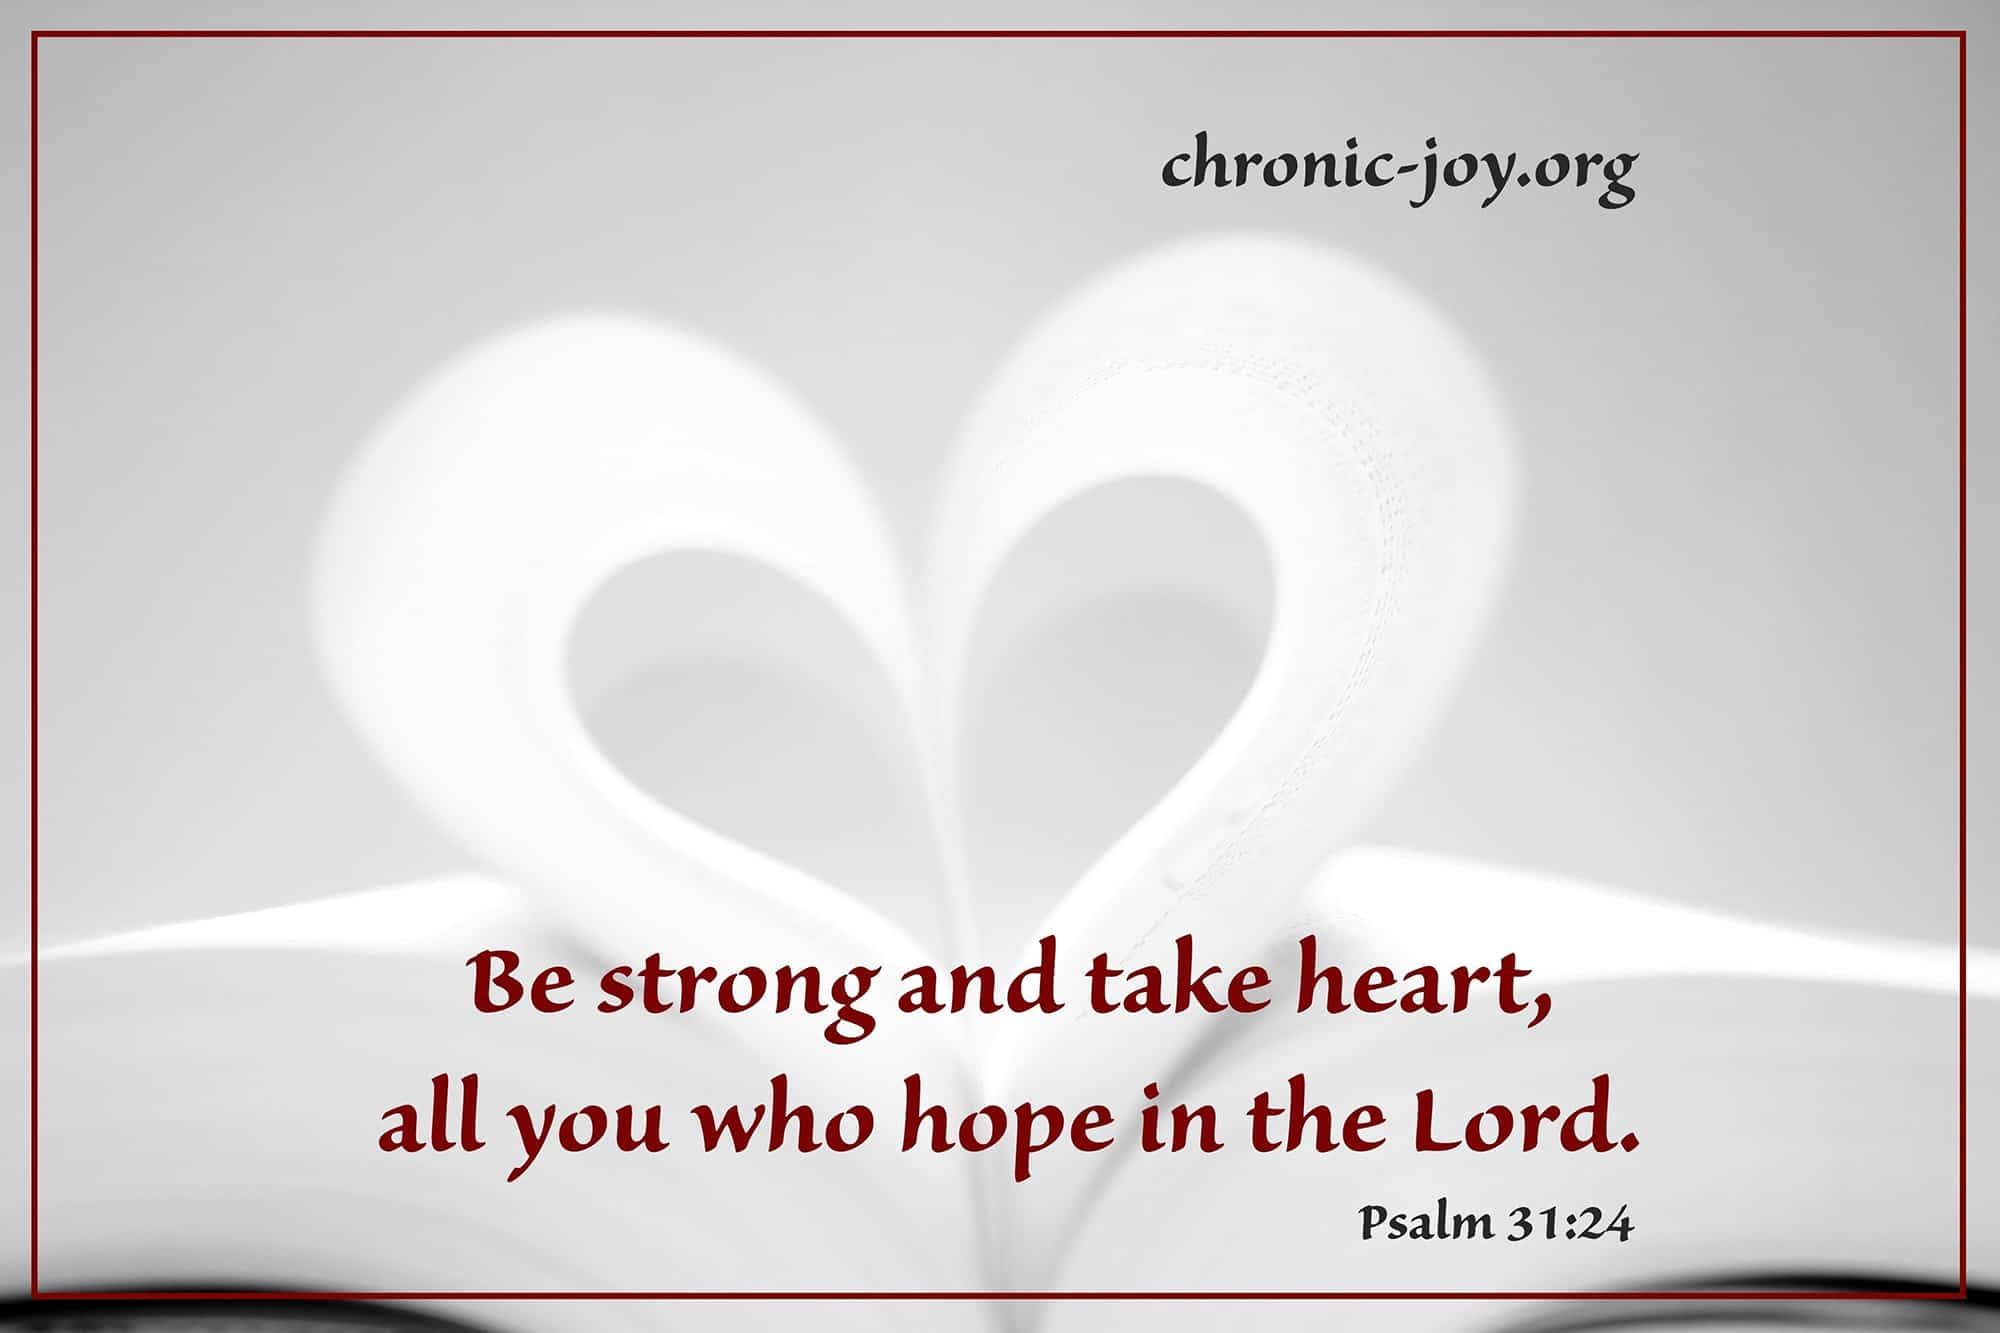 Be strong and take heart, all you who hope in the Lord.